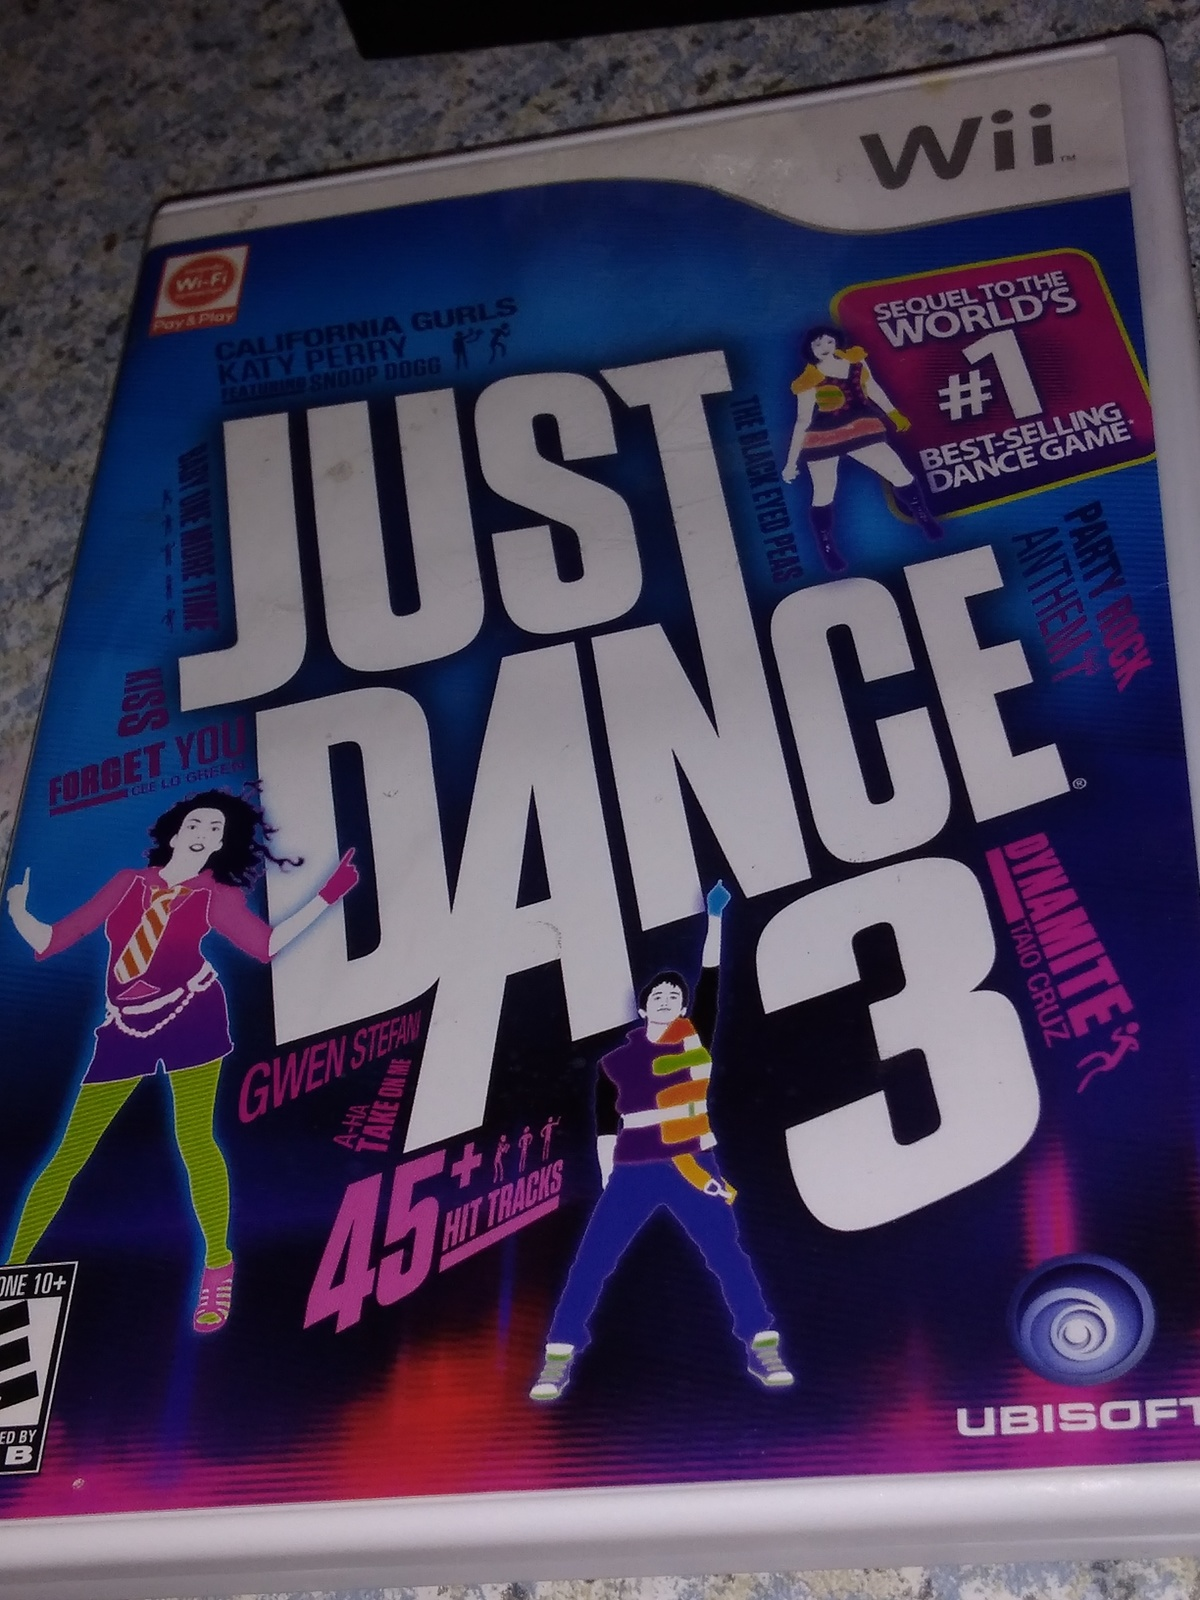 Just Dance 3 Wii image 1